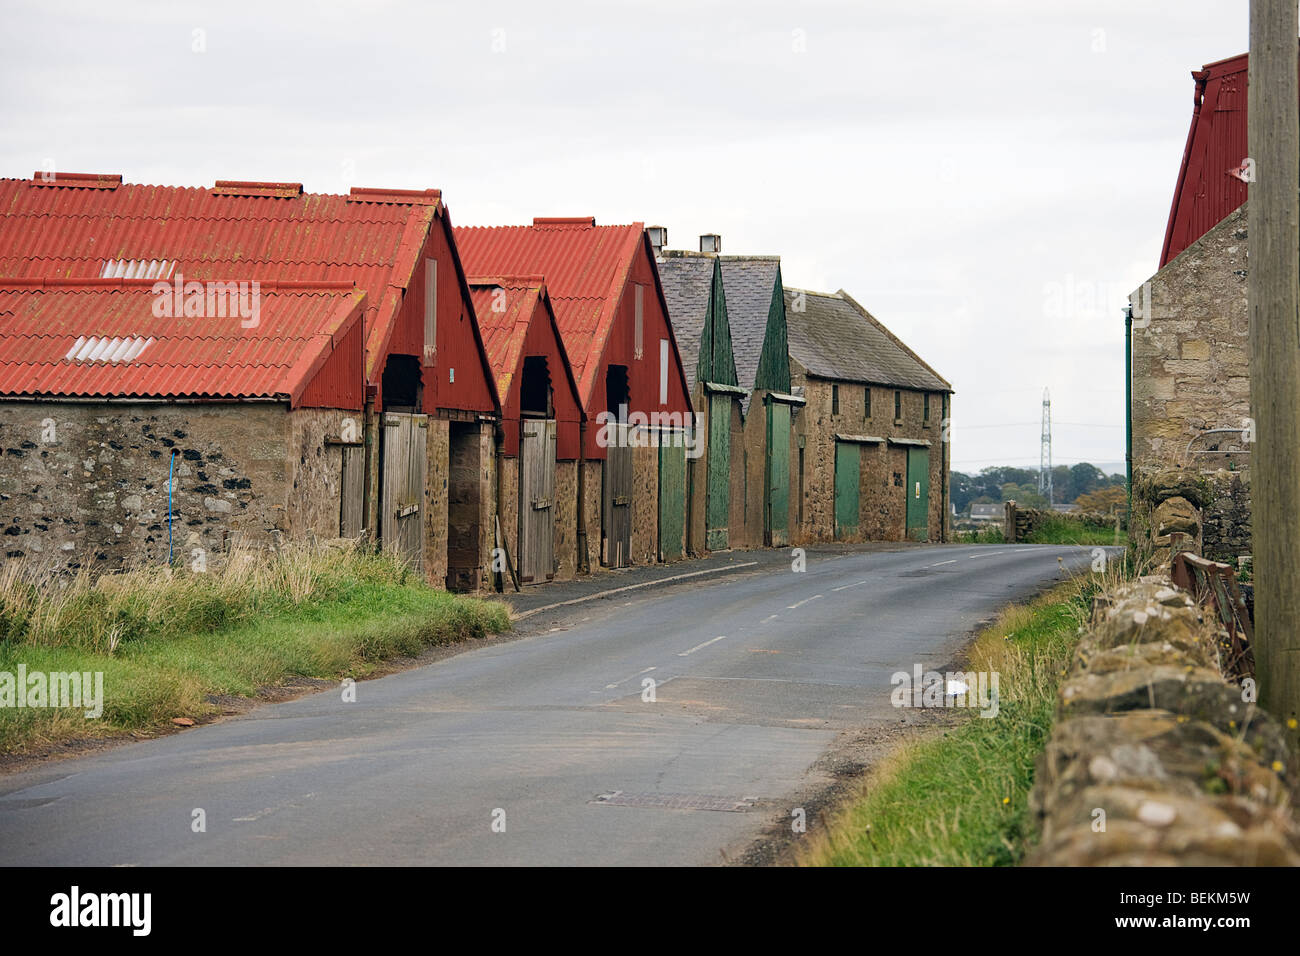 Farm buildings divided by public roads. - Stock Image